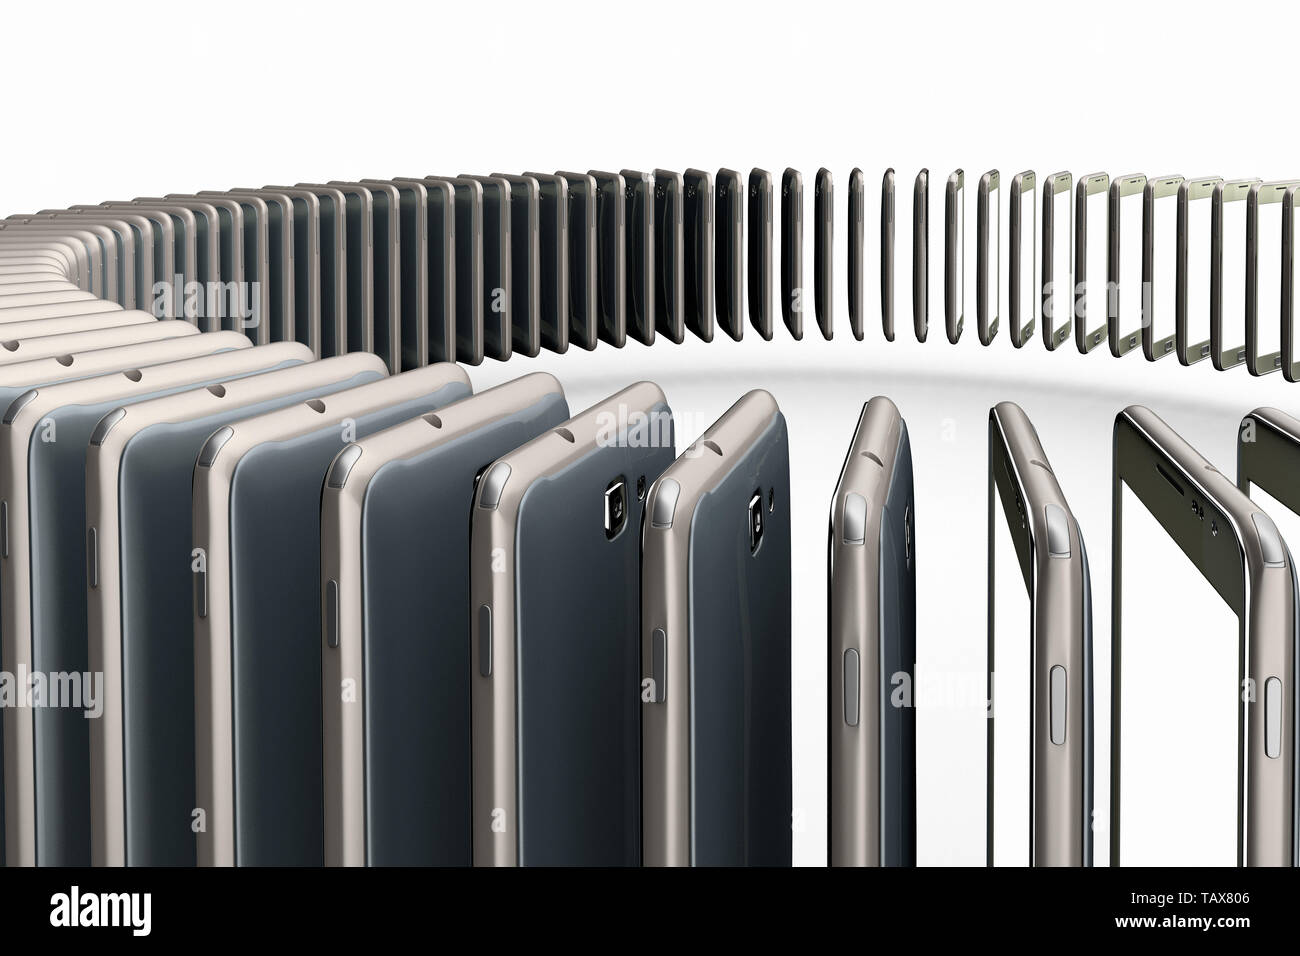 3D rendering of a conceptual image of mass production of cell phones - Stock Image